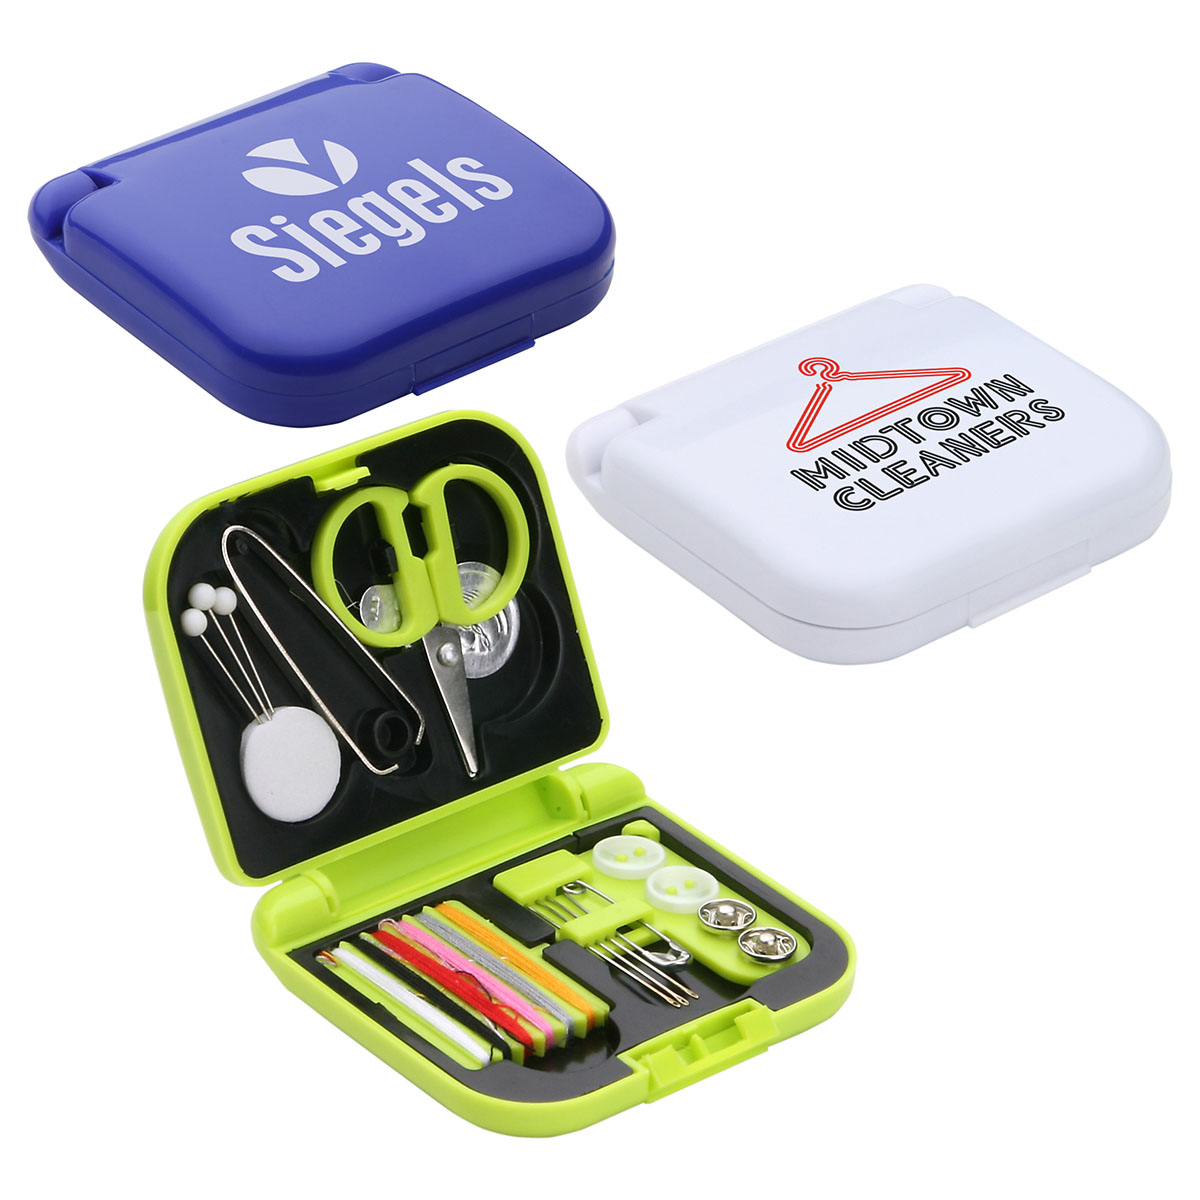 Travel Sewing Kit, WTV-SK08, 1 Colour Imprint